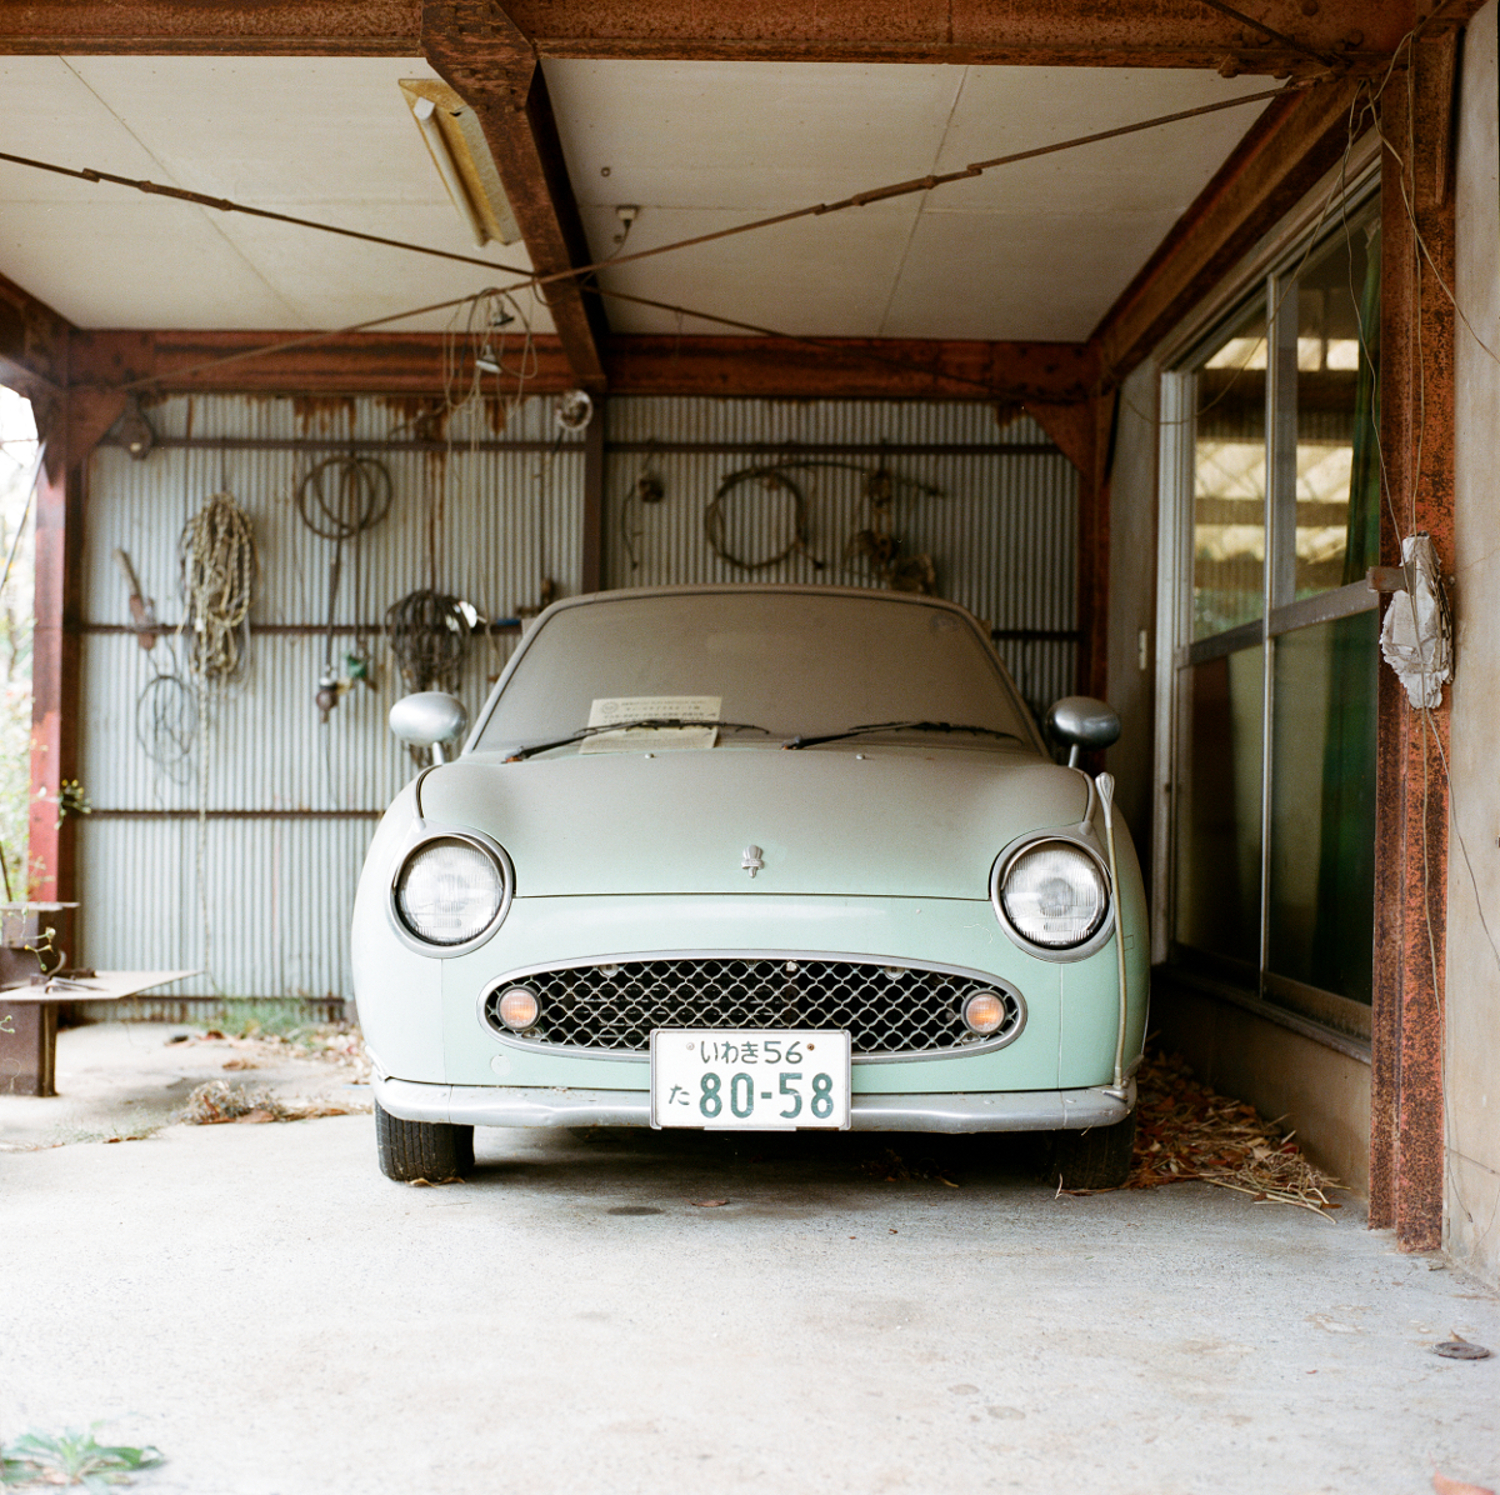 A Nissan Figaro (vintage car, build at 20000 ex. in the late 1980s) gathers dust for over four years and awaits the return of its owner.